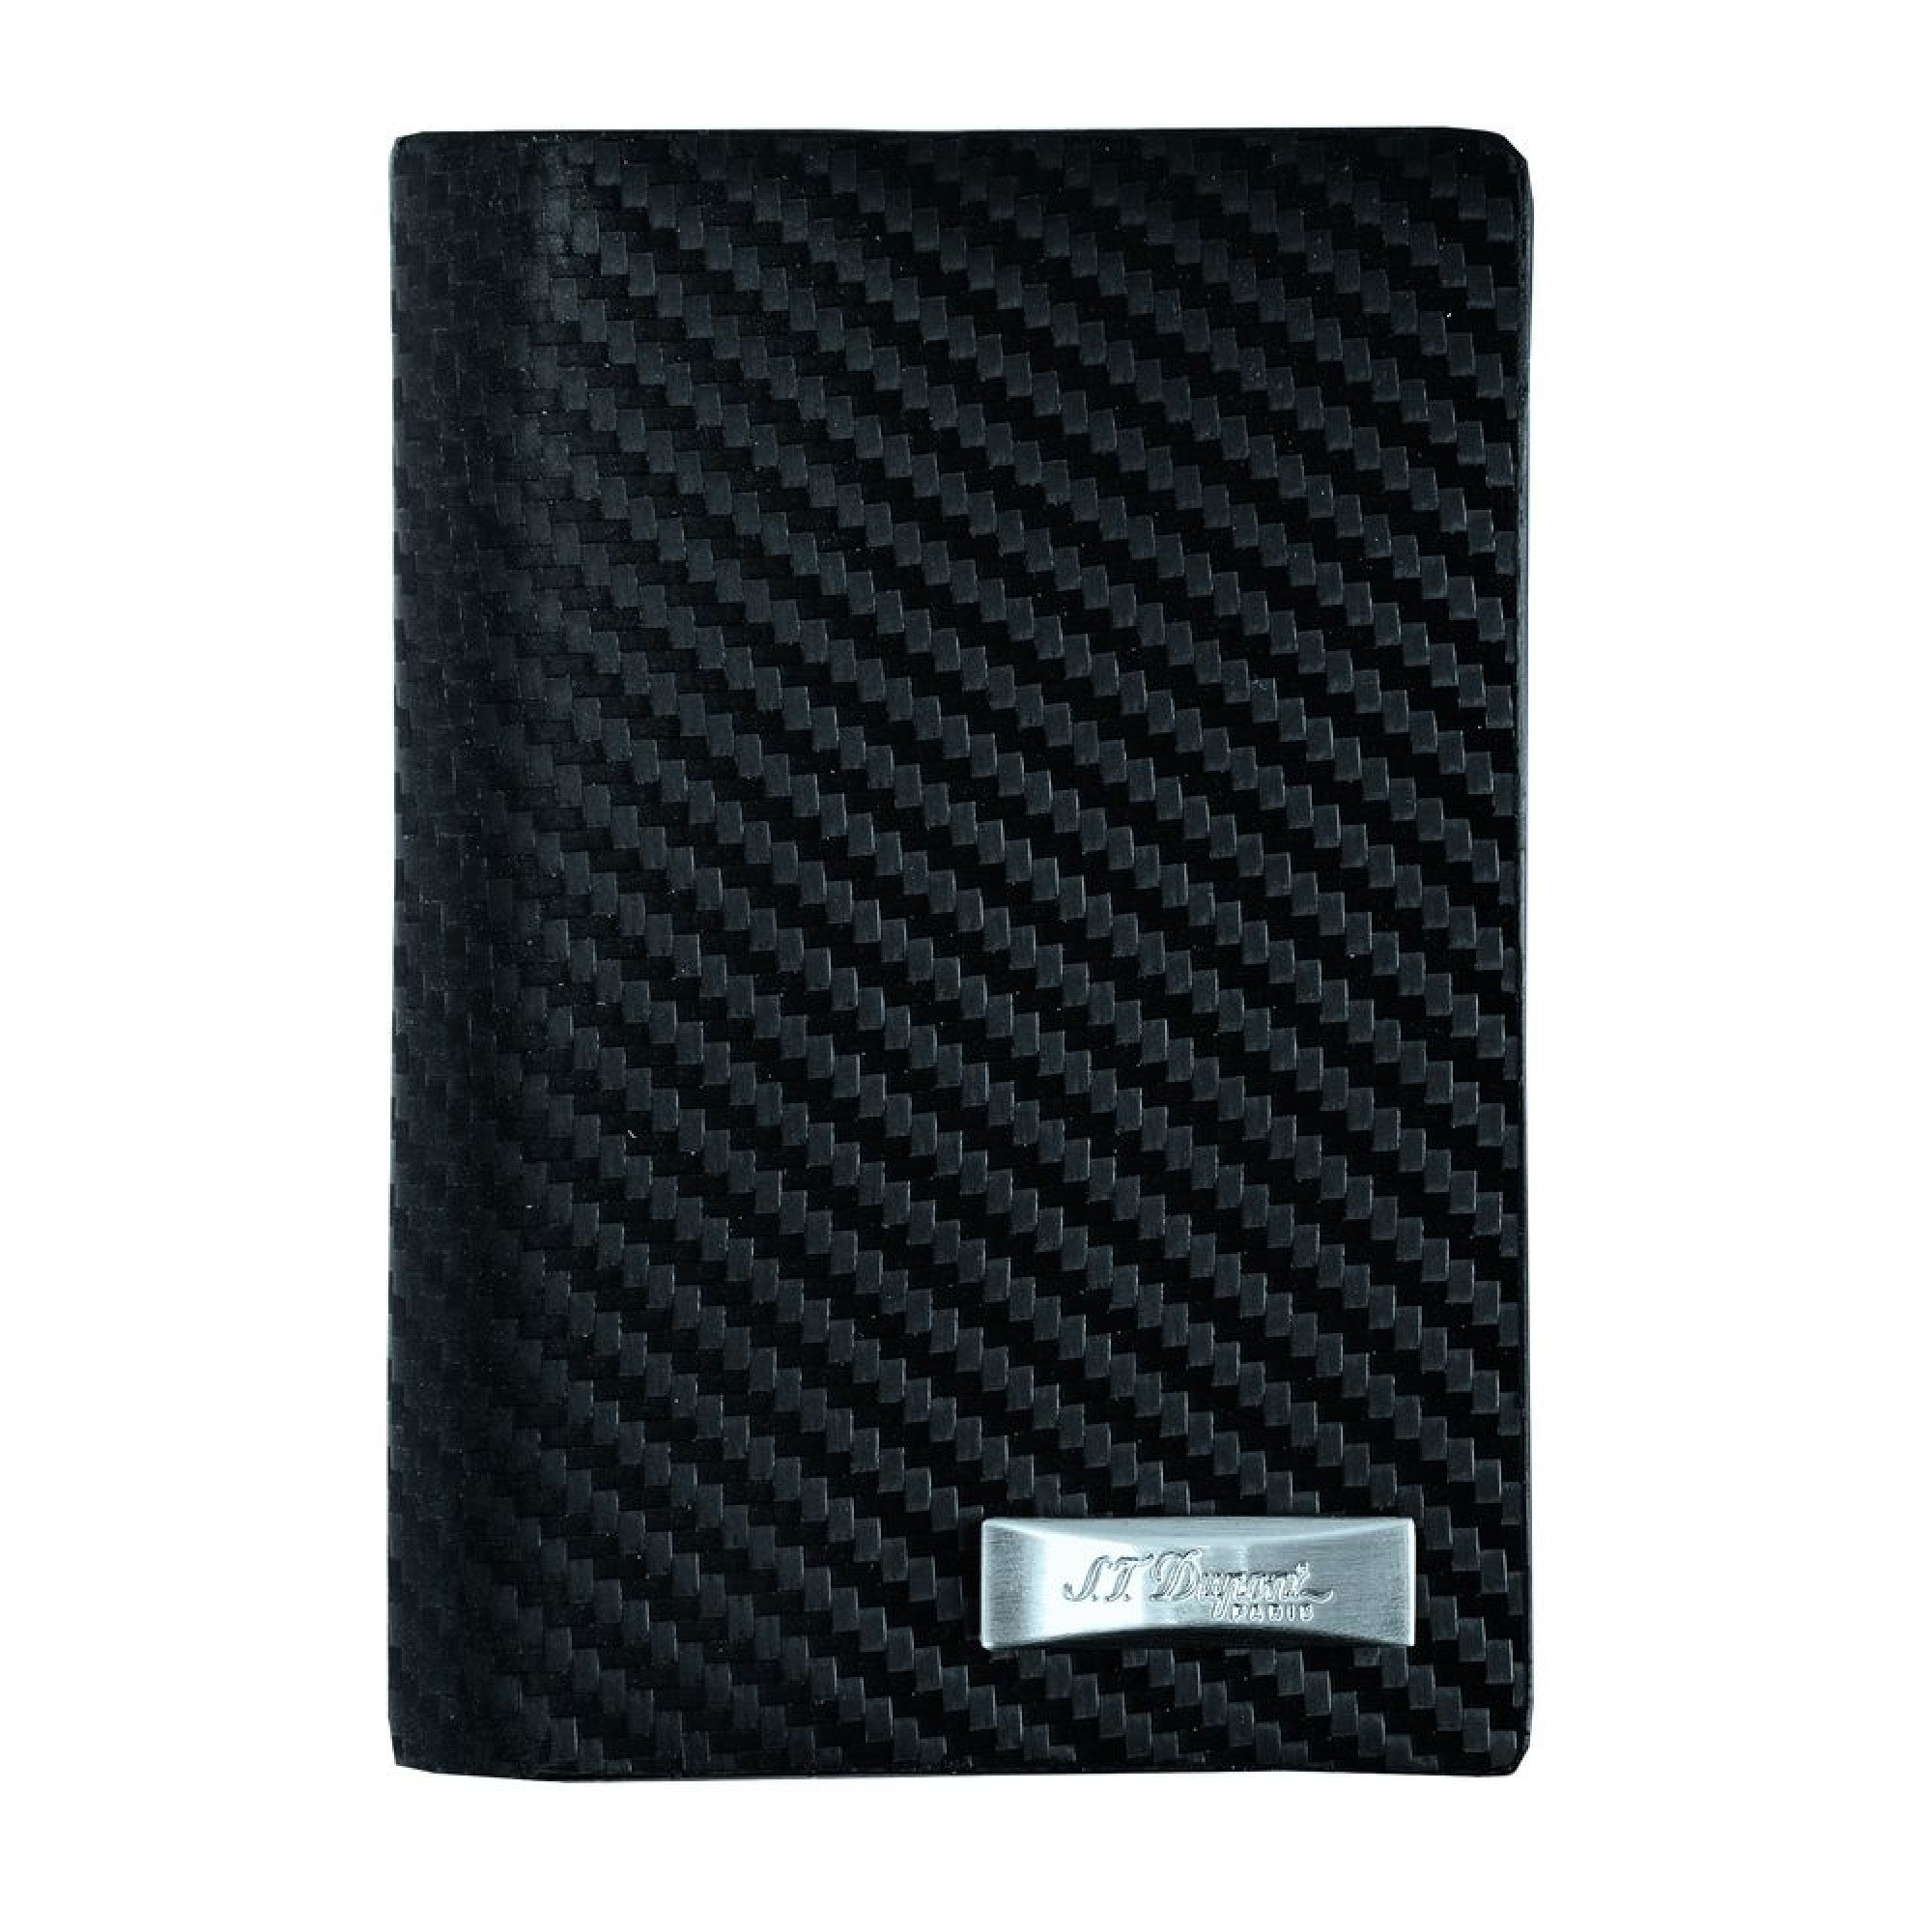 S.T. Dupont Black Leather Business and/or Credit Card Holder 170004